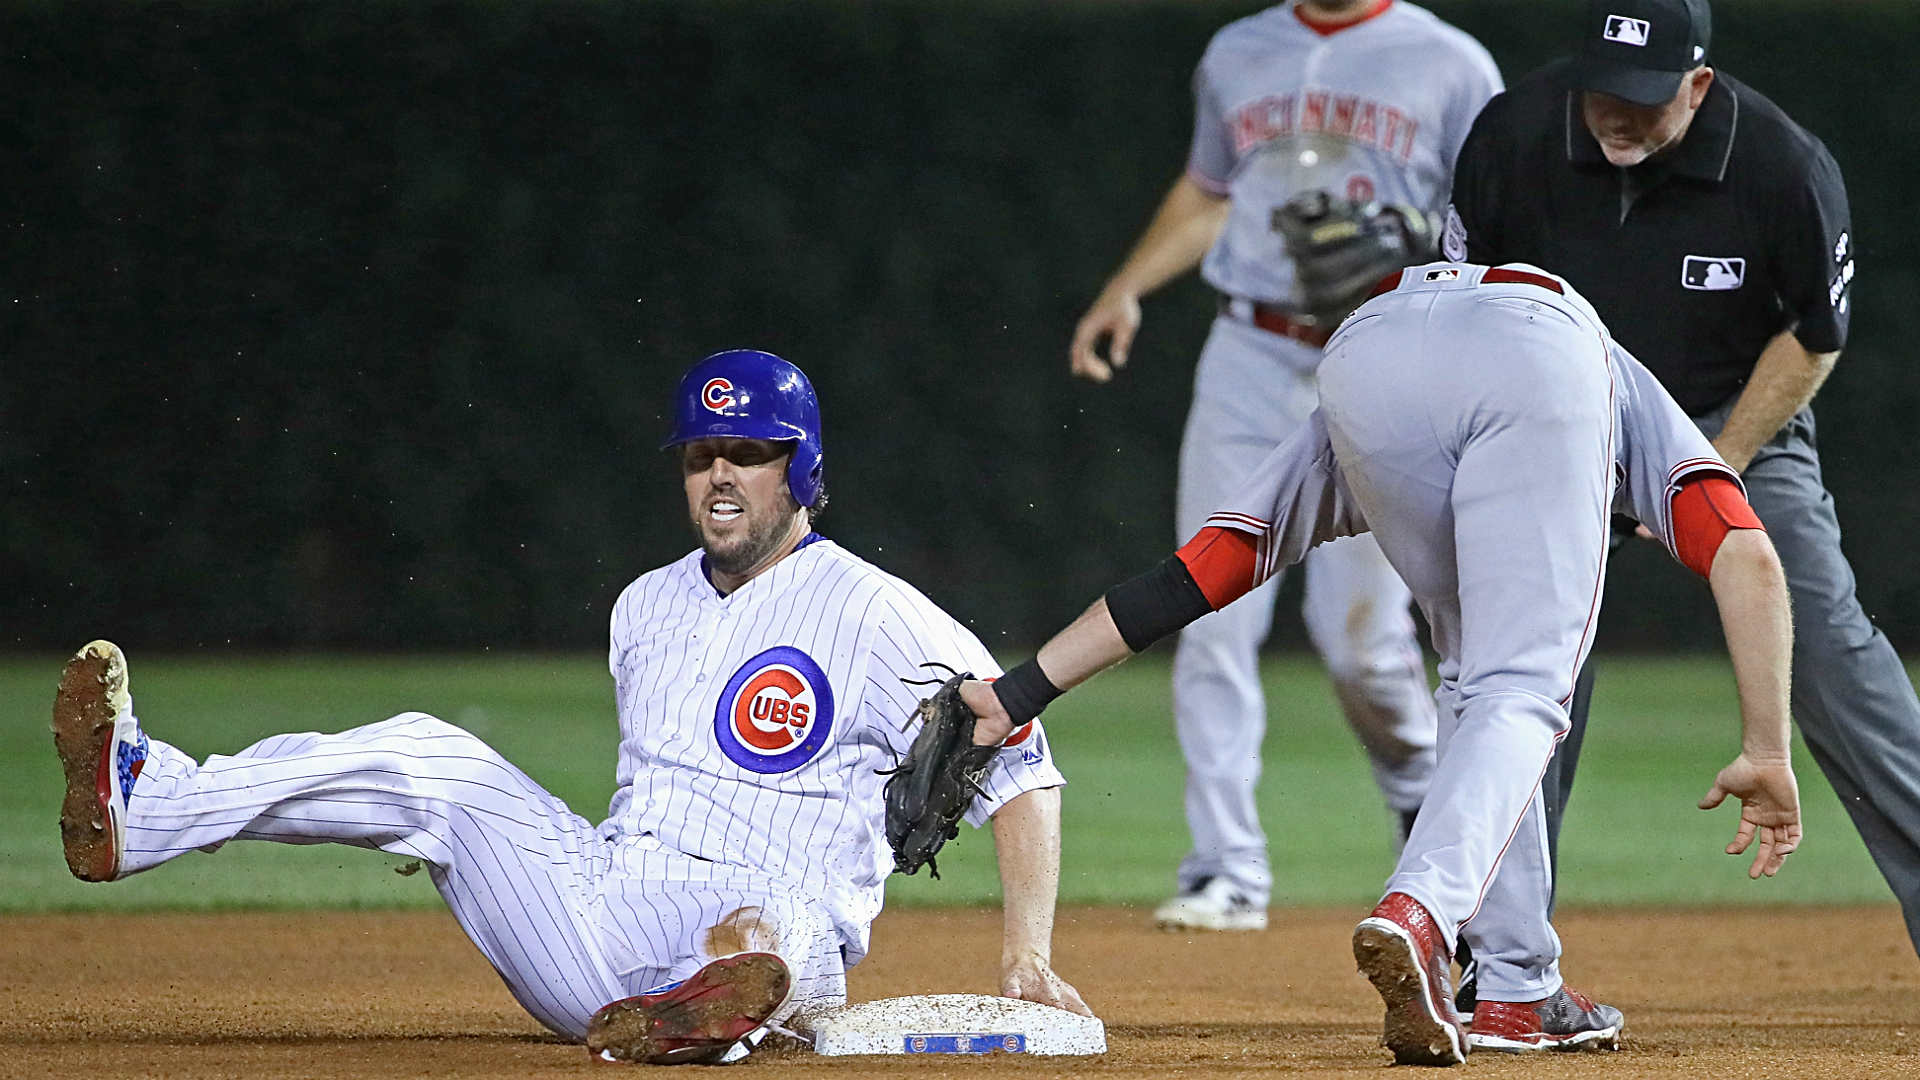 Chicago Cubs vs. Cincinnati Reds